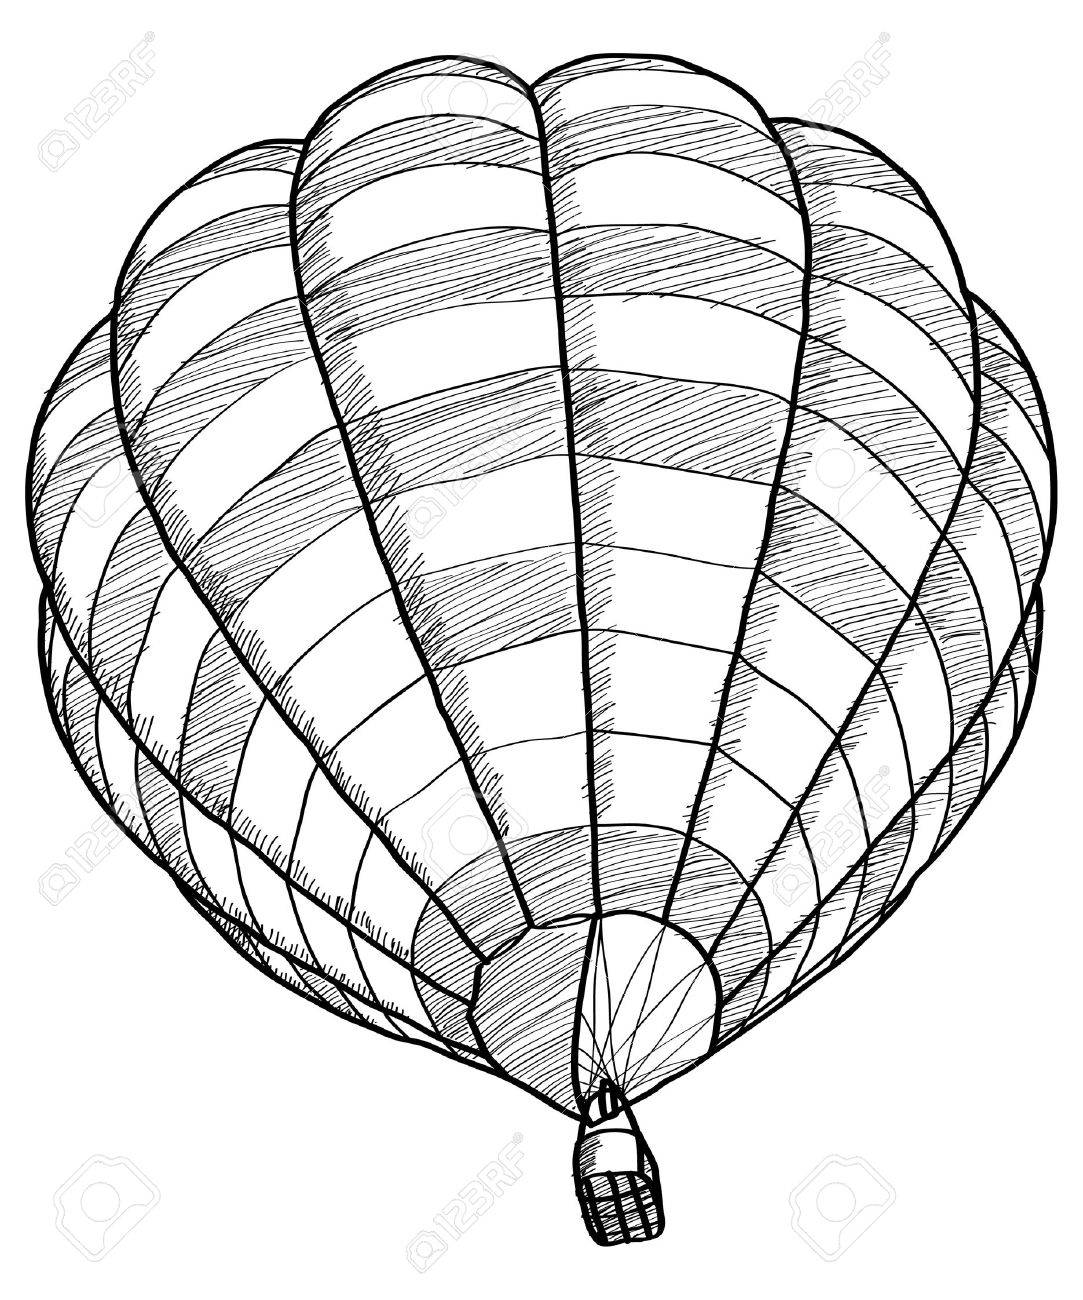 Doodle Of Hot Air Balloon Vector Sketch Up Line Royalty Free ...